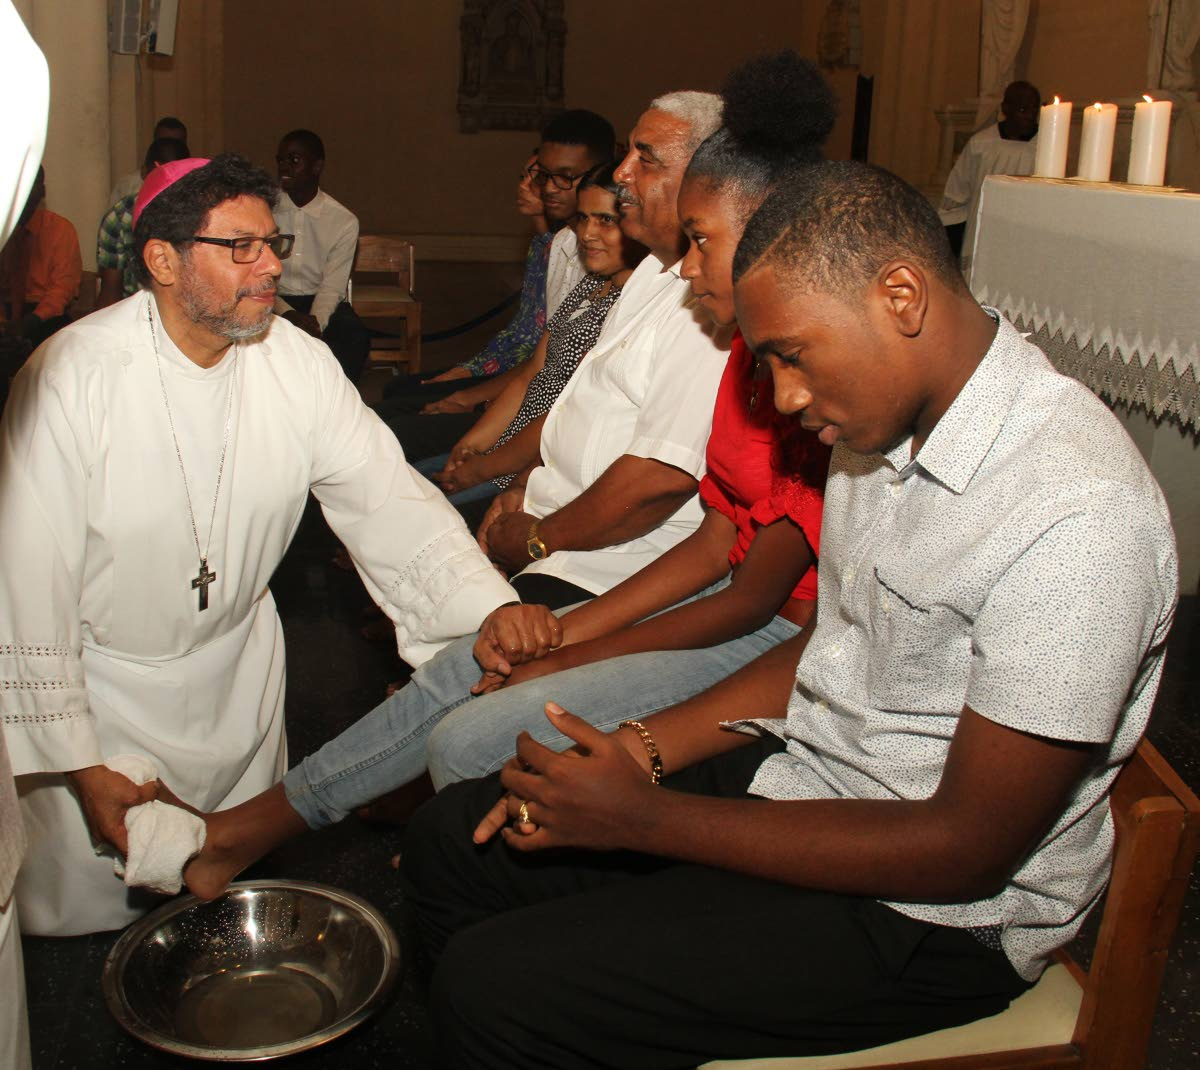 SERVANT: Archbishop of Port of Spain Jason Gordon washes the feet of Tyra Jack yesterday during Holy Thursday mass at the Cathedral of the Immaculate Conception in Port of Spain.